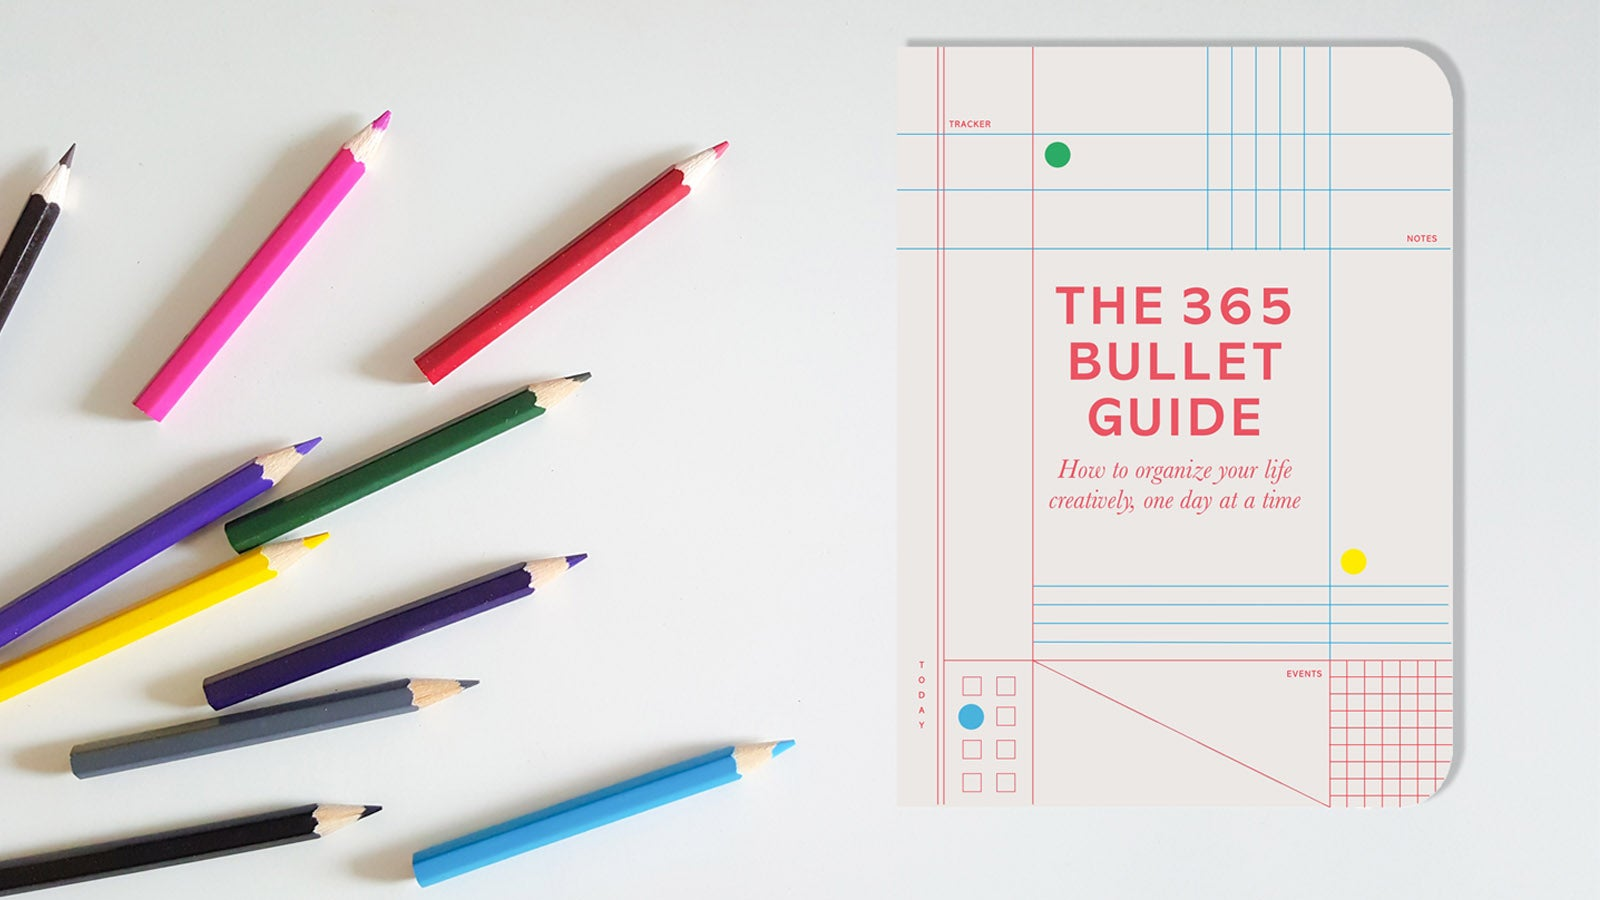 Print These Bullet Journal Diary Templates For 2019 From The 365 Bullet Guide Pan Macmillan